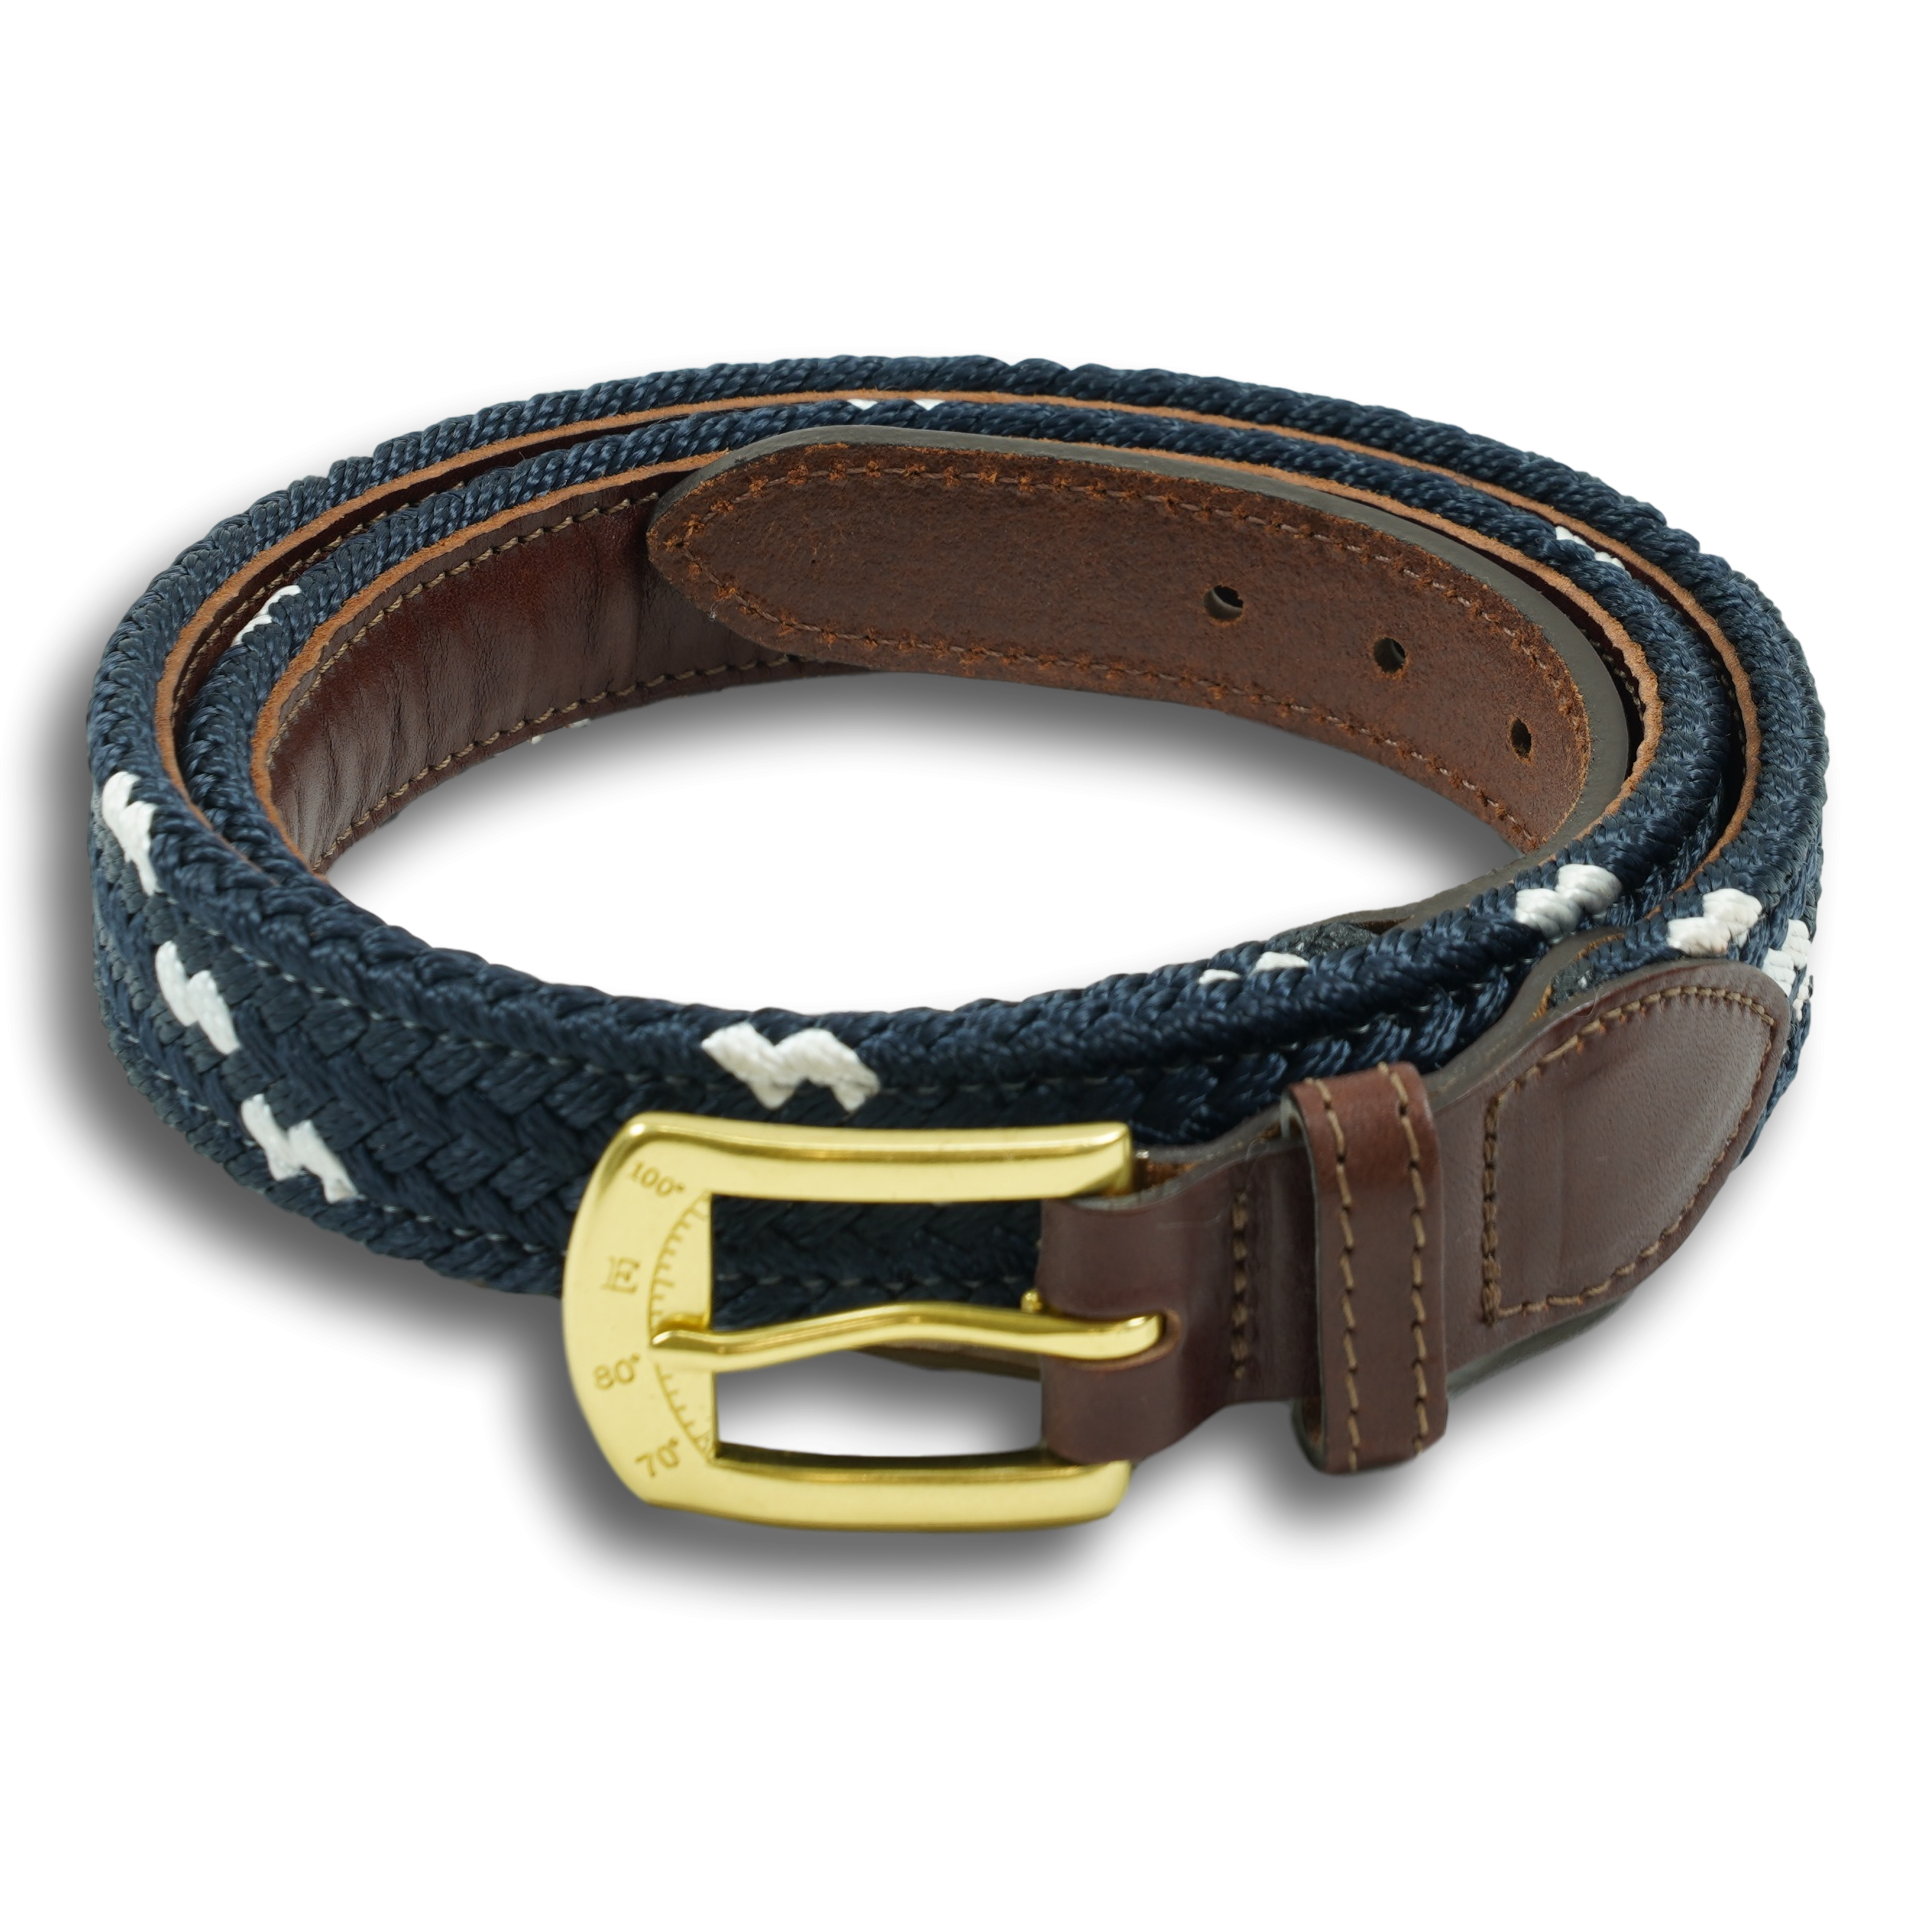 Leather-backed Mariner Belt